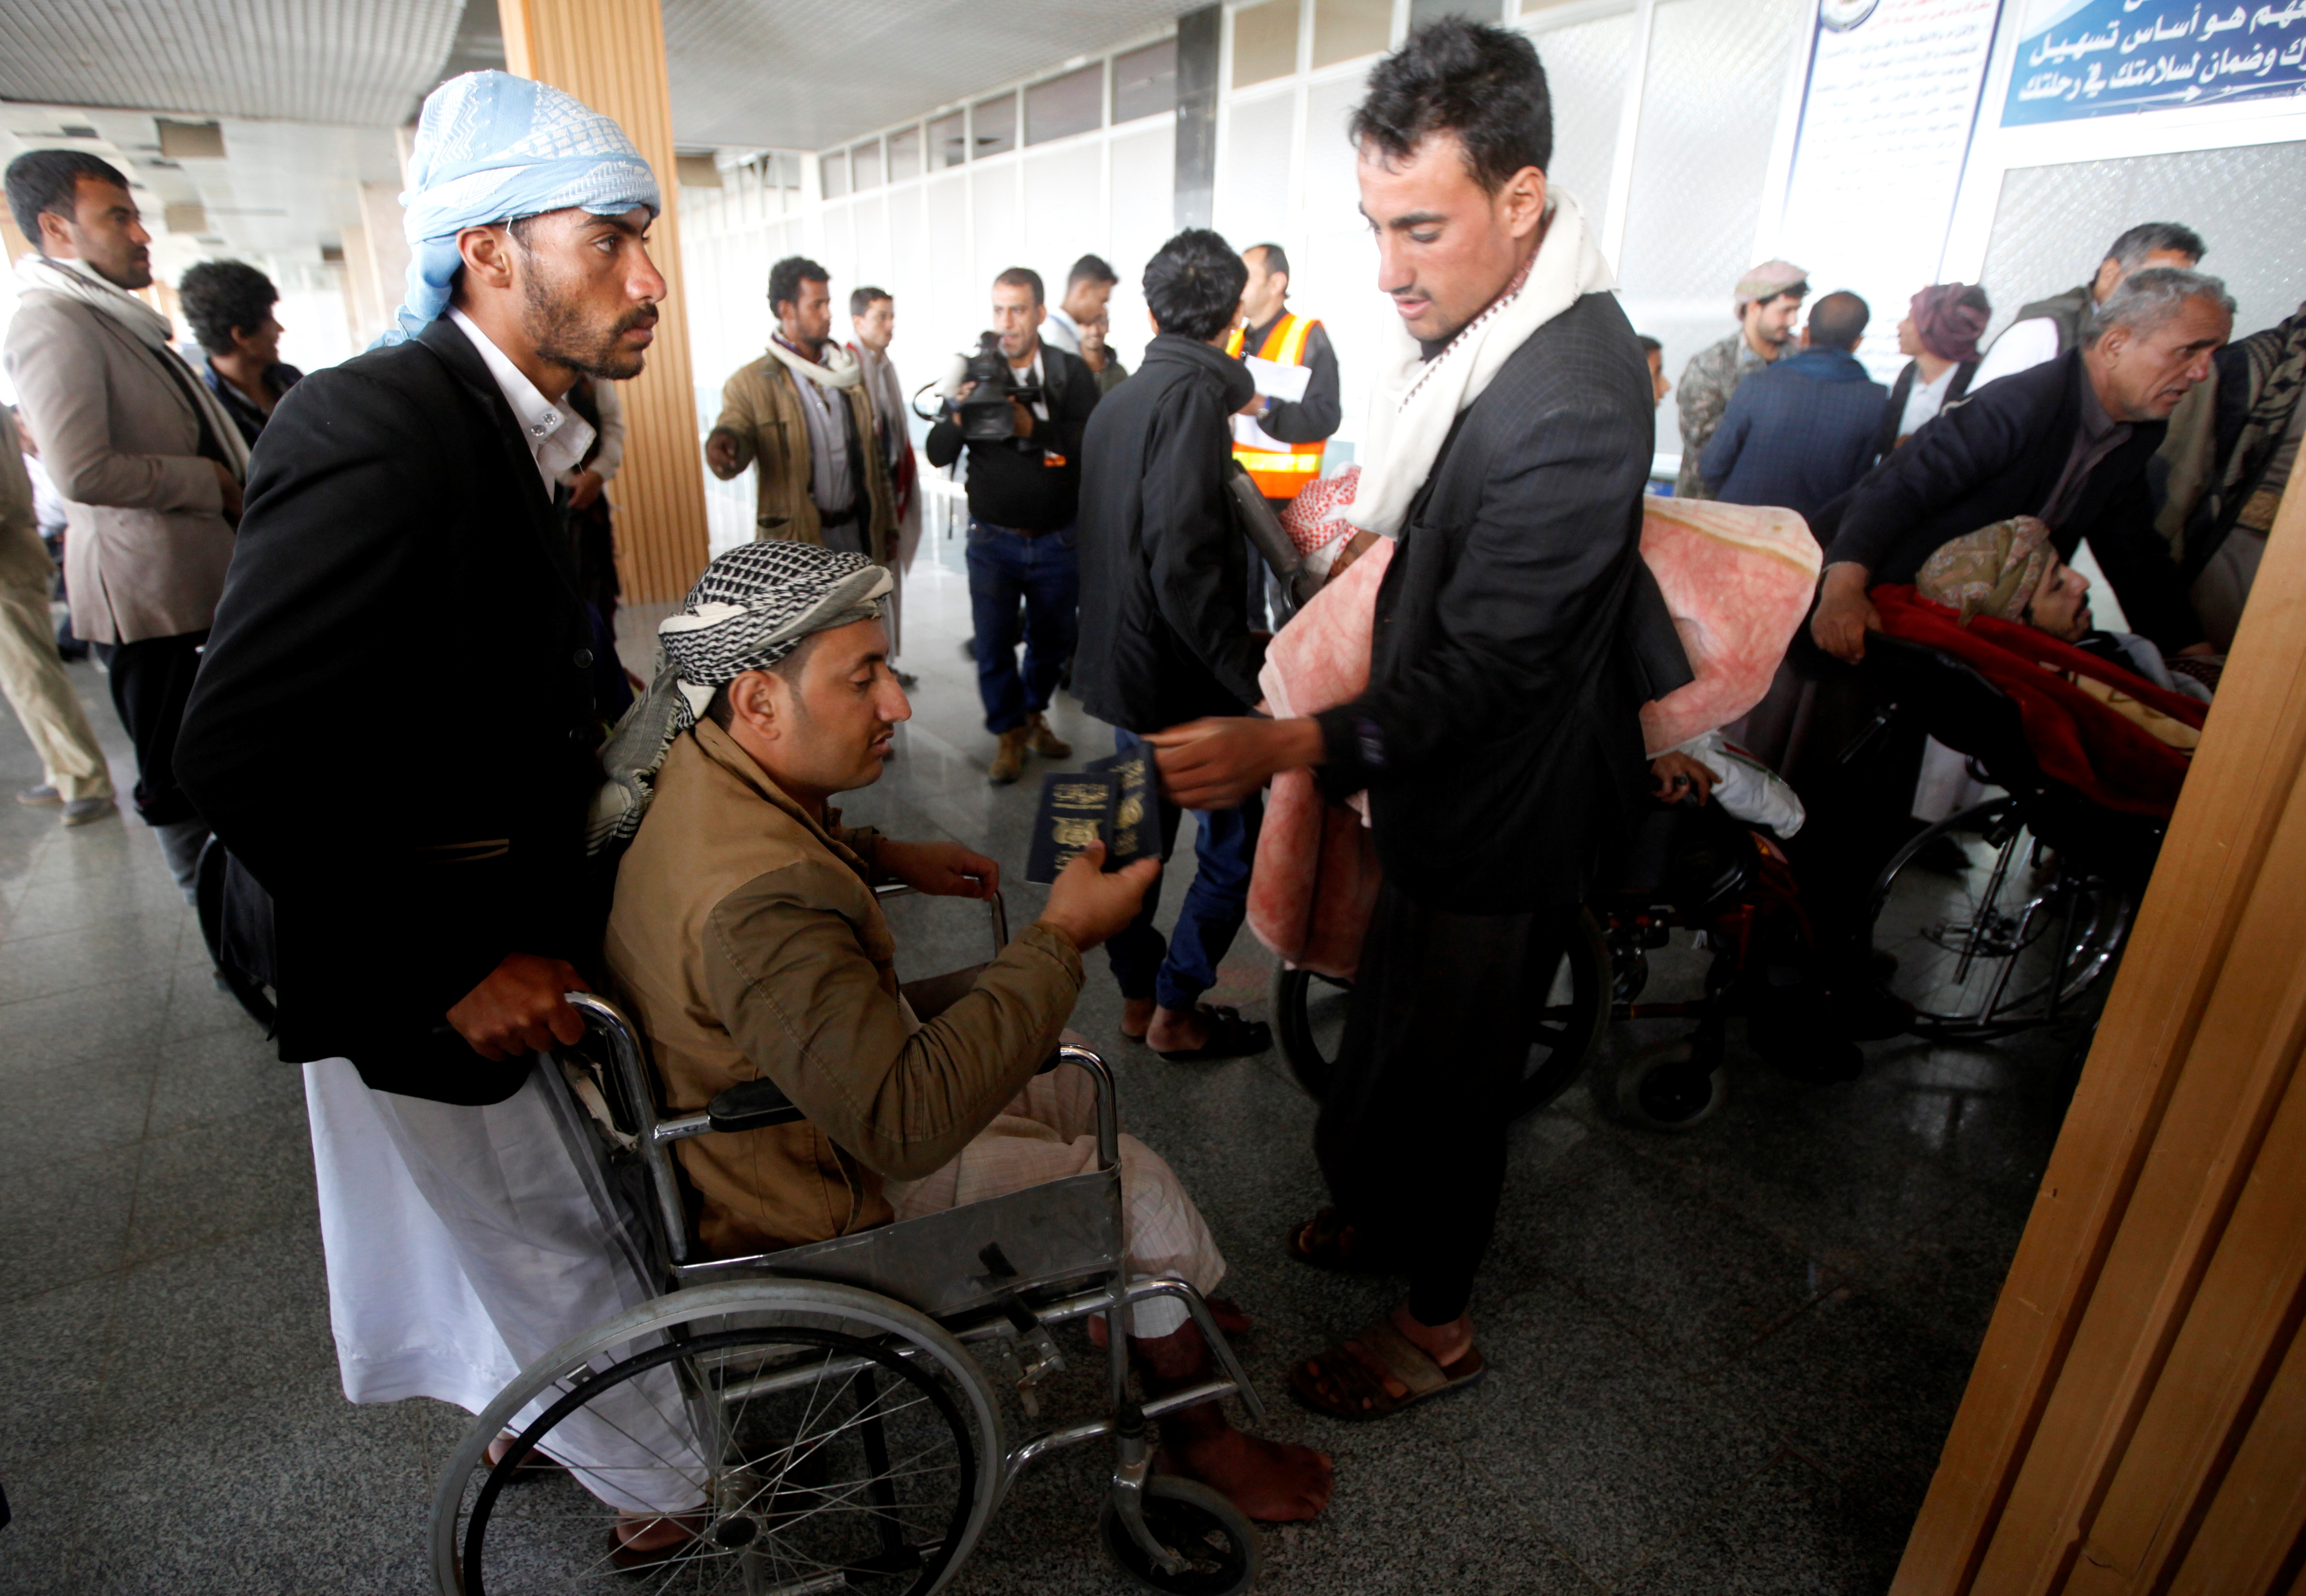 A wounded Houthi fighter, on a wheelchair, holds his passport at Sanaa airport during his evacuation from Yemen, December 3, 2018. REUTERS/Mohamed al-Sayaghi